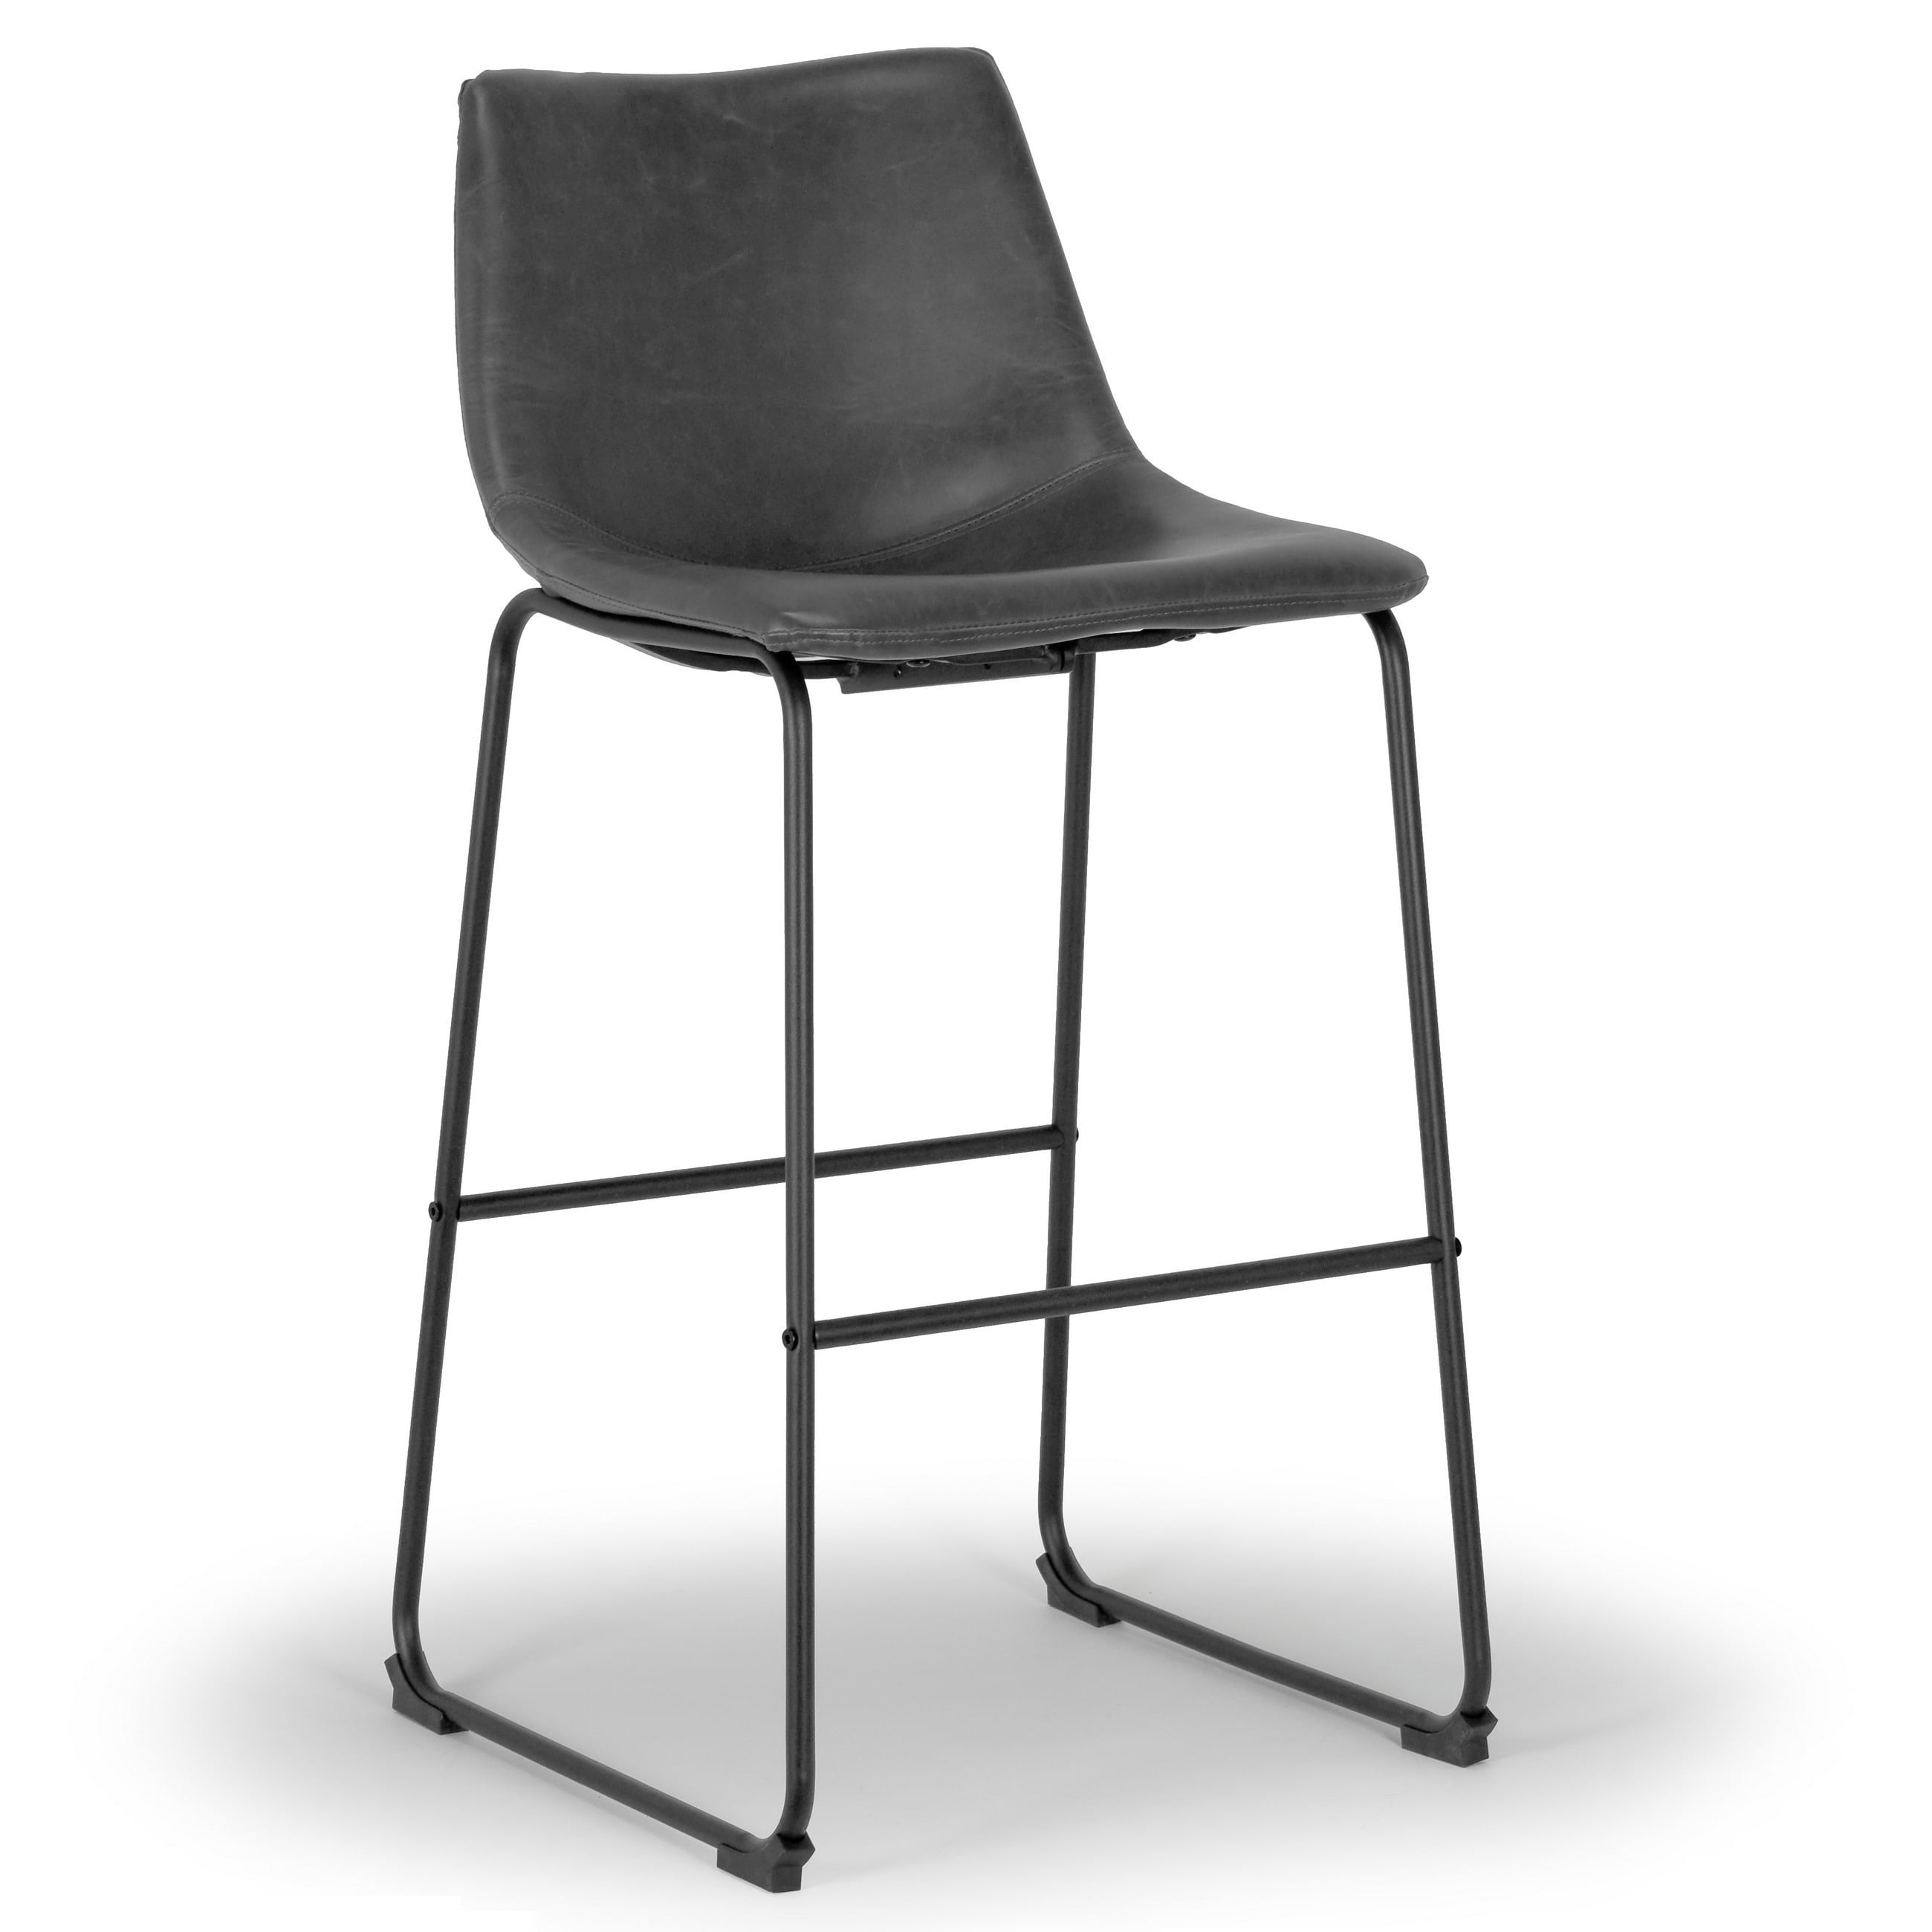 Charmant Shop Adan Faux Leather Iron Frame Bar Stool (Set Of 2)   Free Shipping  Today   Overstock.com   12144063